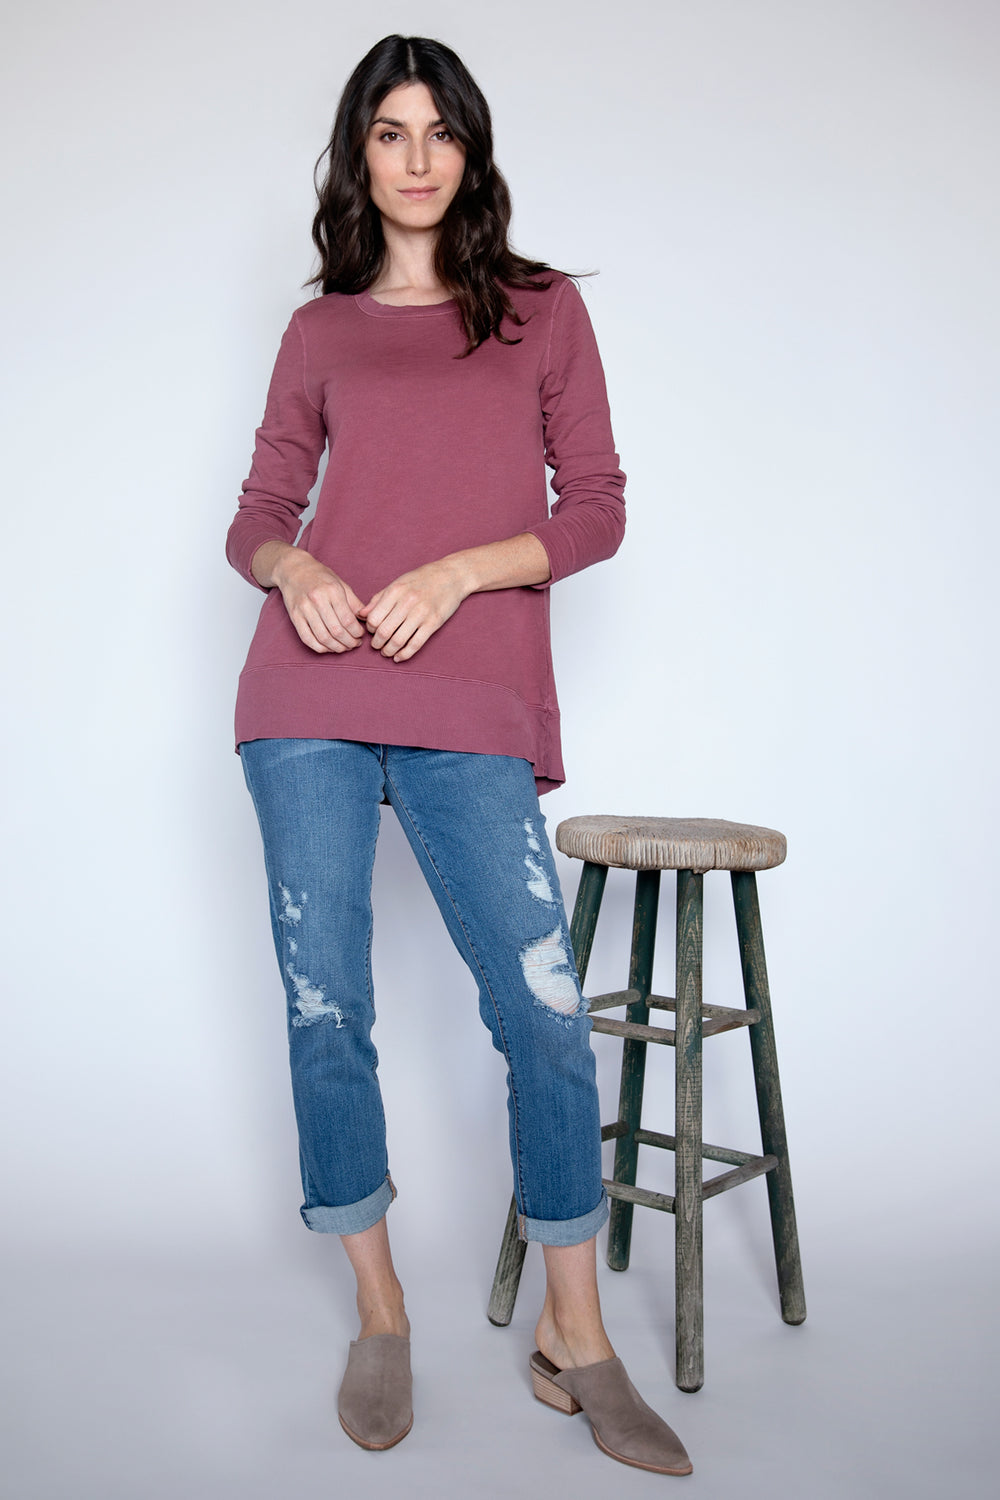 Long Sleeve Tunic - Mododoc